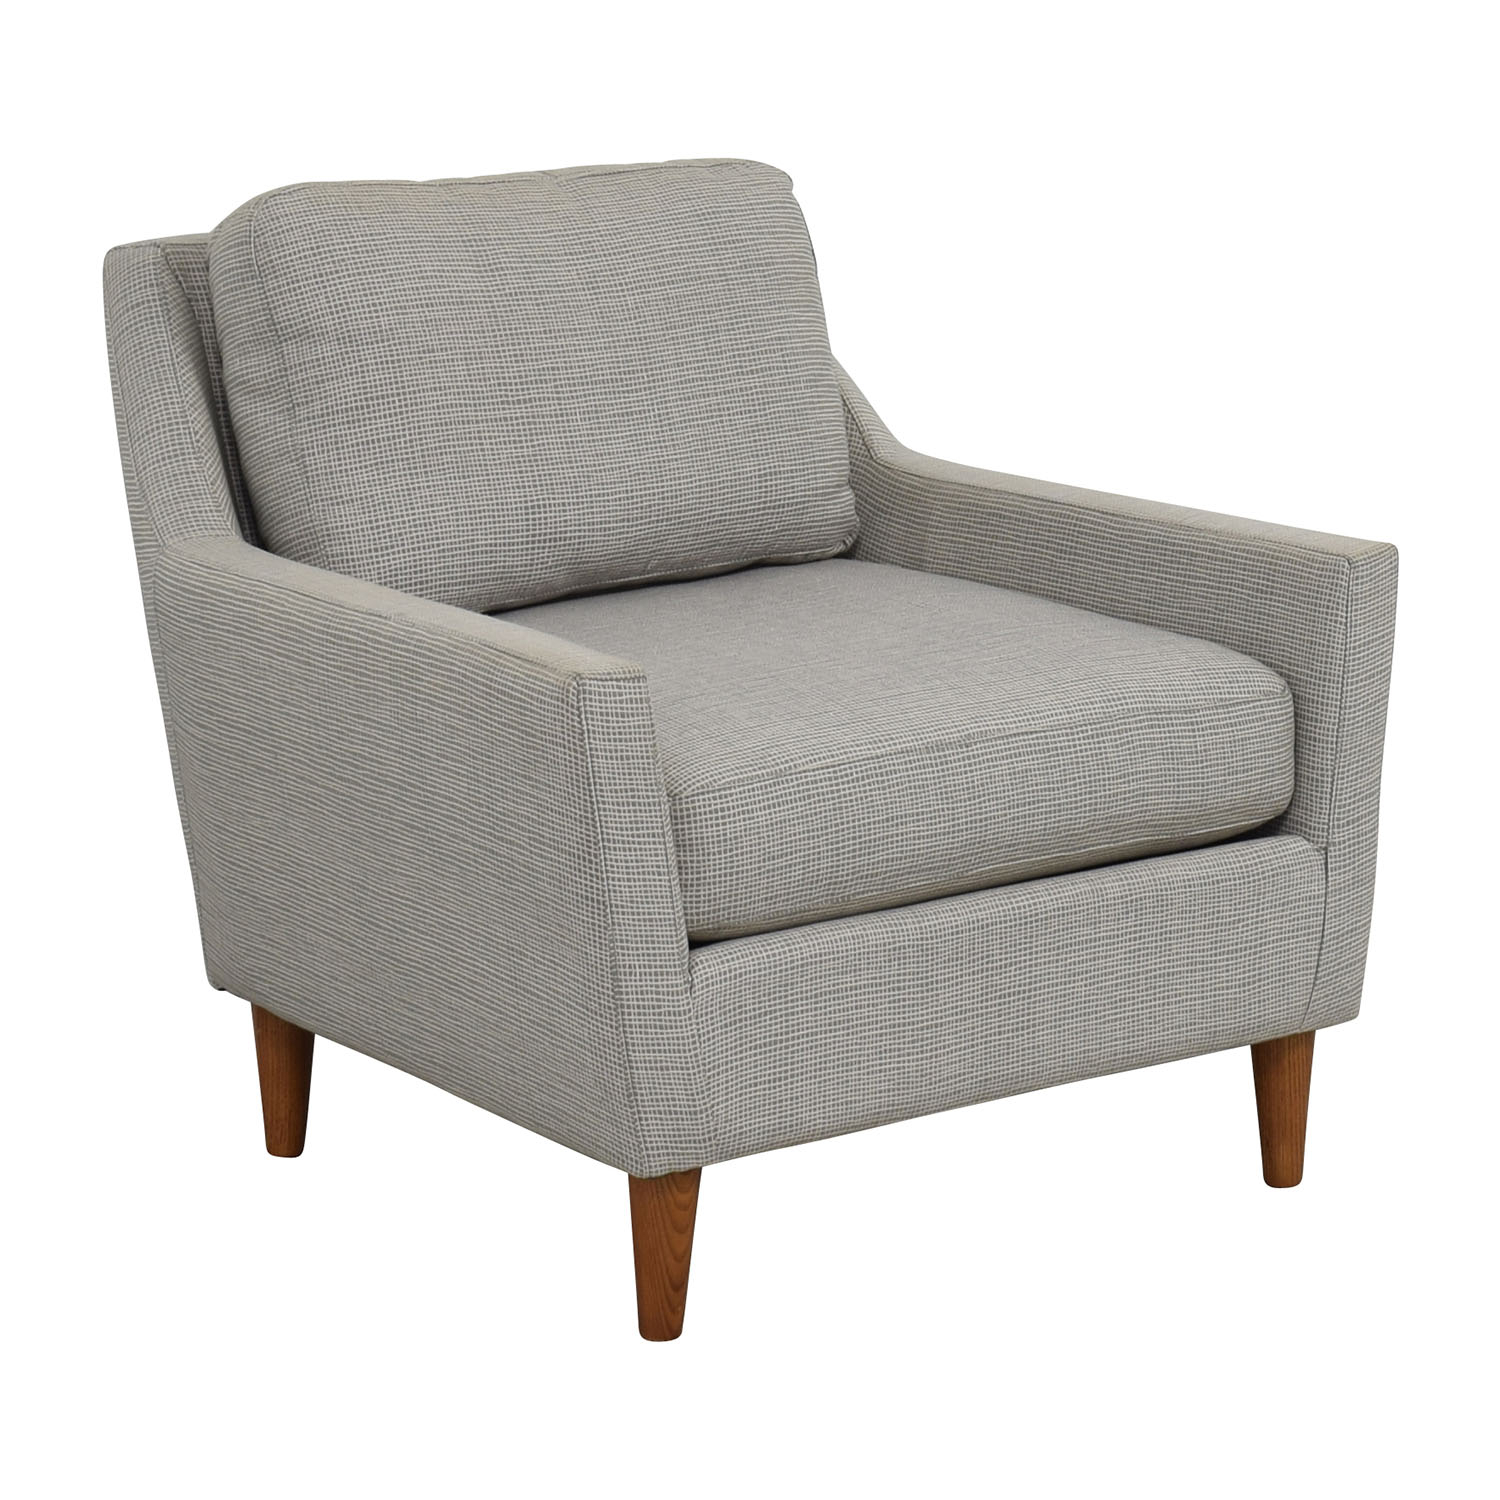 66% Off – West Elm West Elm Grey Everett Sofa Chair / Chairs Pertaining To Elm Sofa Chairs (Photo 16 of 20)